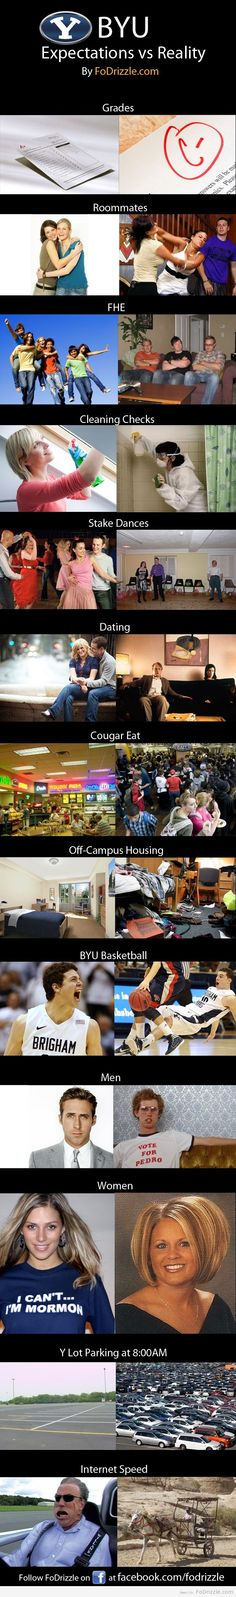 cool BYU - Expectations VS Reality - Funny, Meme - Fo'Drizzle